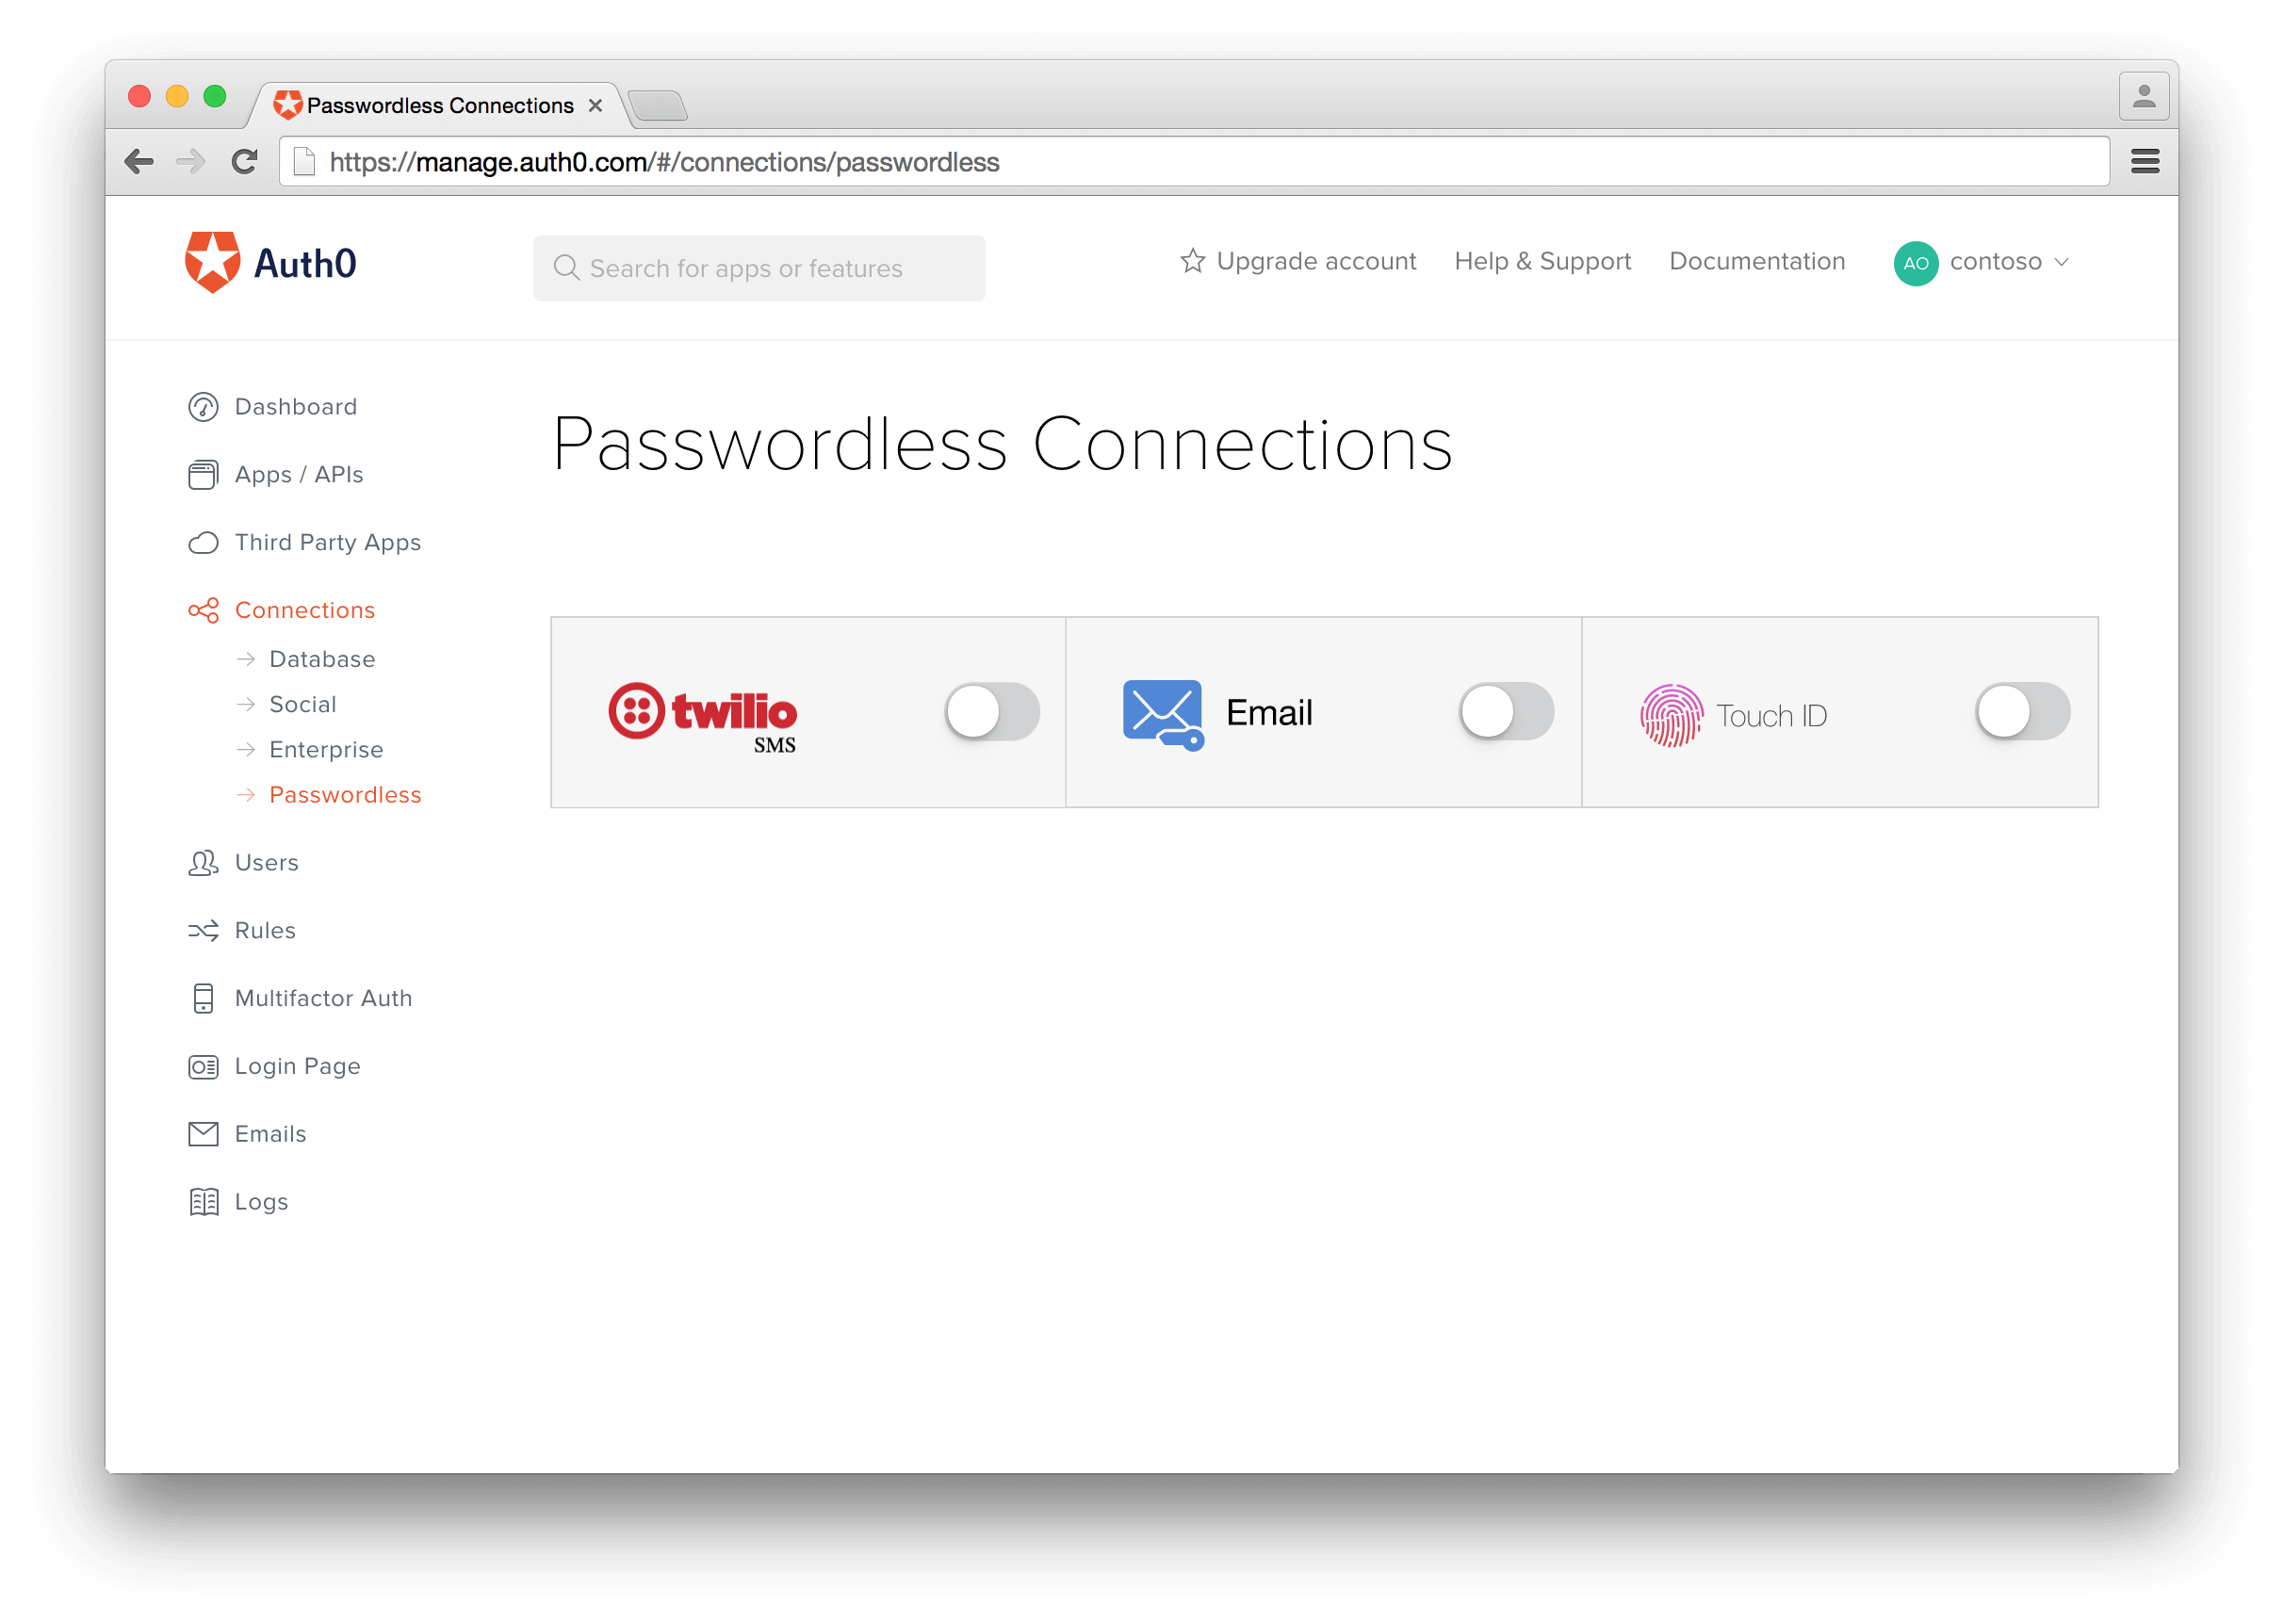 Create a Passwordless Connection for authentication